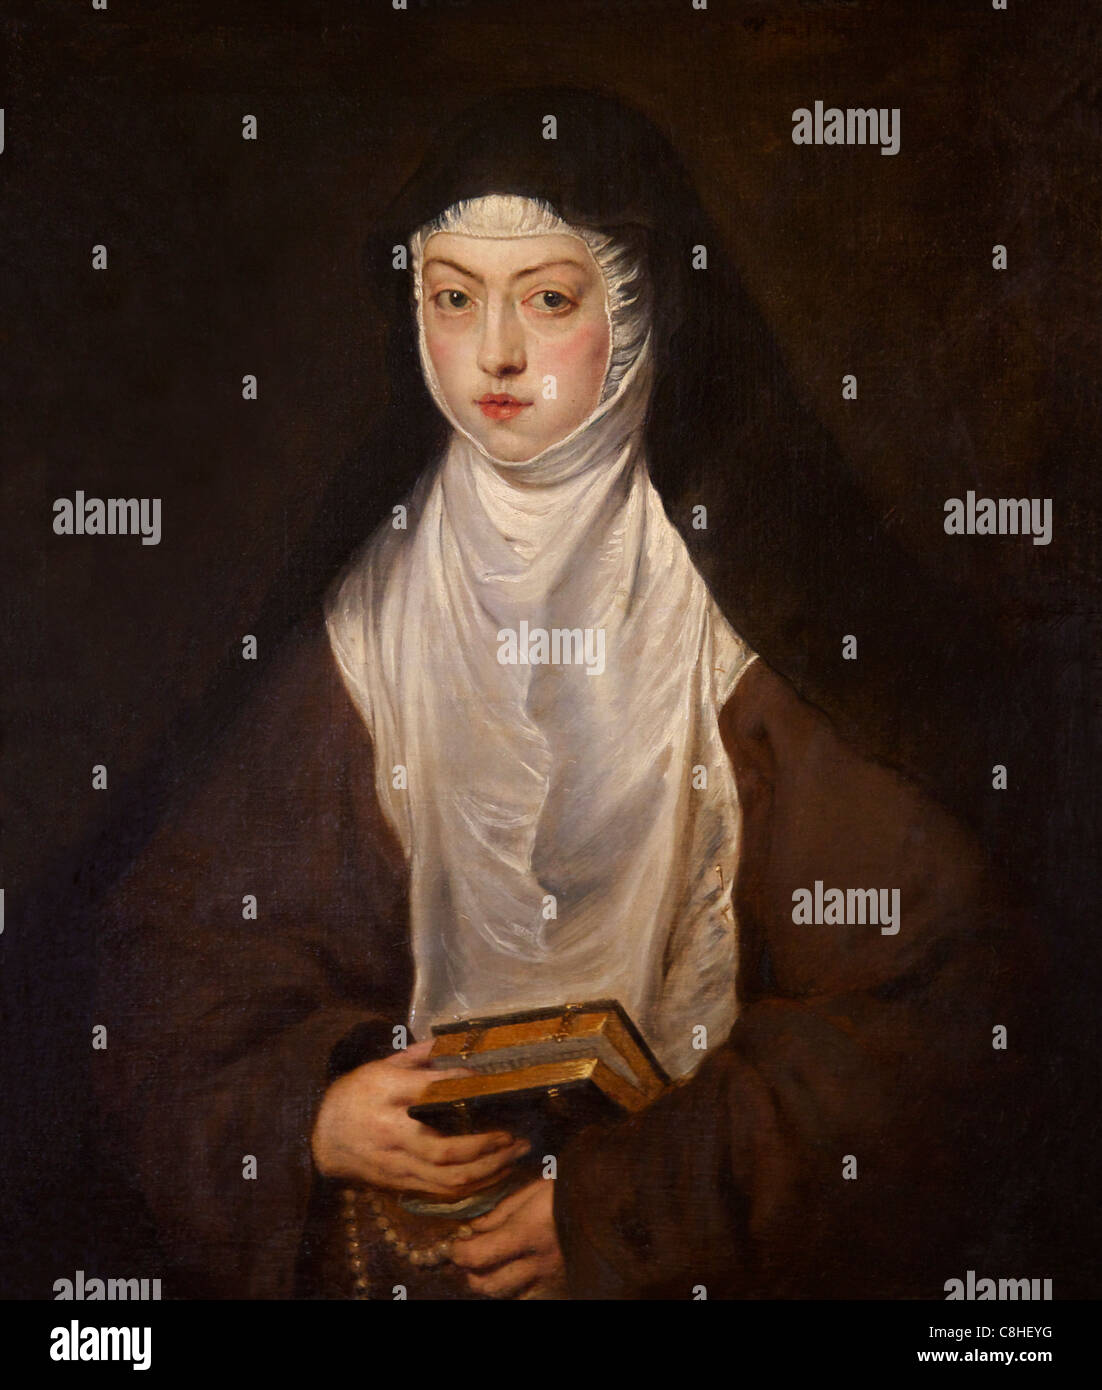 Ana Dorotea, Daughter of Rudolph II, a nun at the Convent of the Descalzas Reales, by Peter Paul Rubens, Waterloo - Stock Image